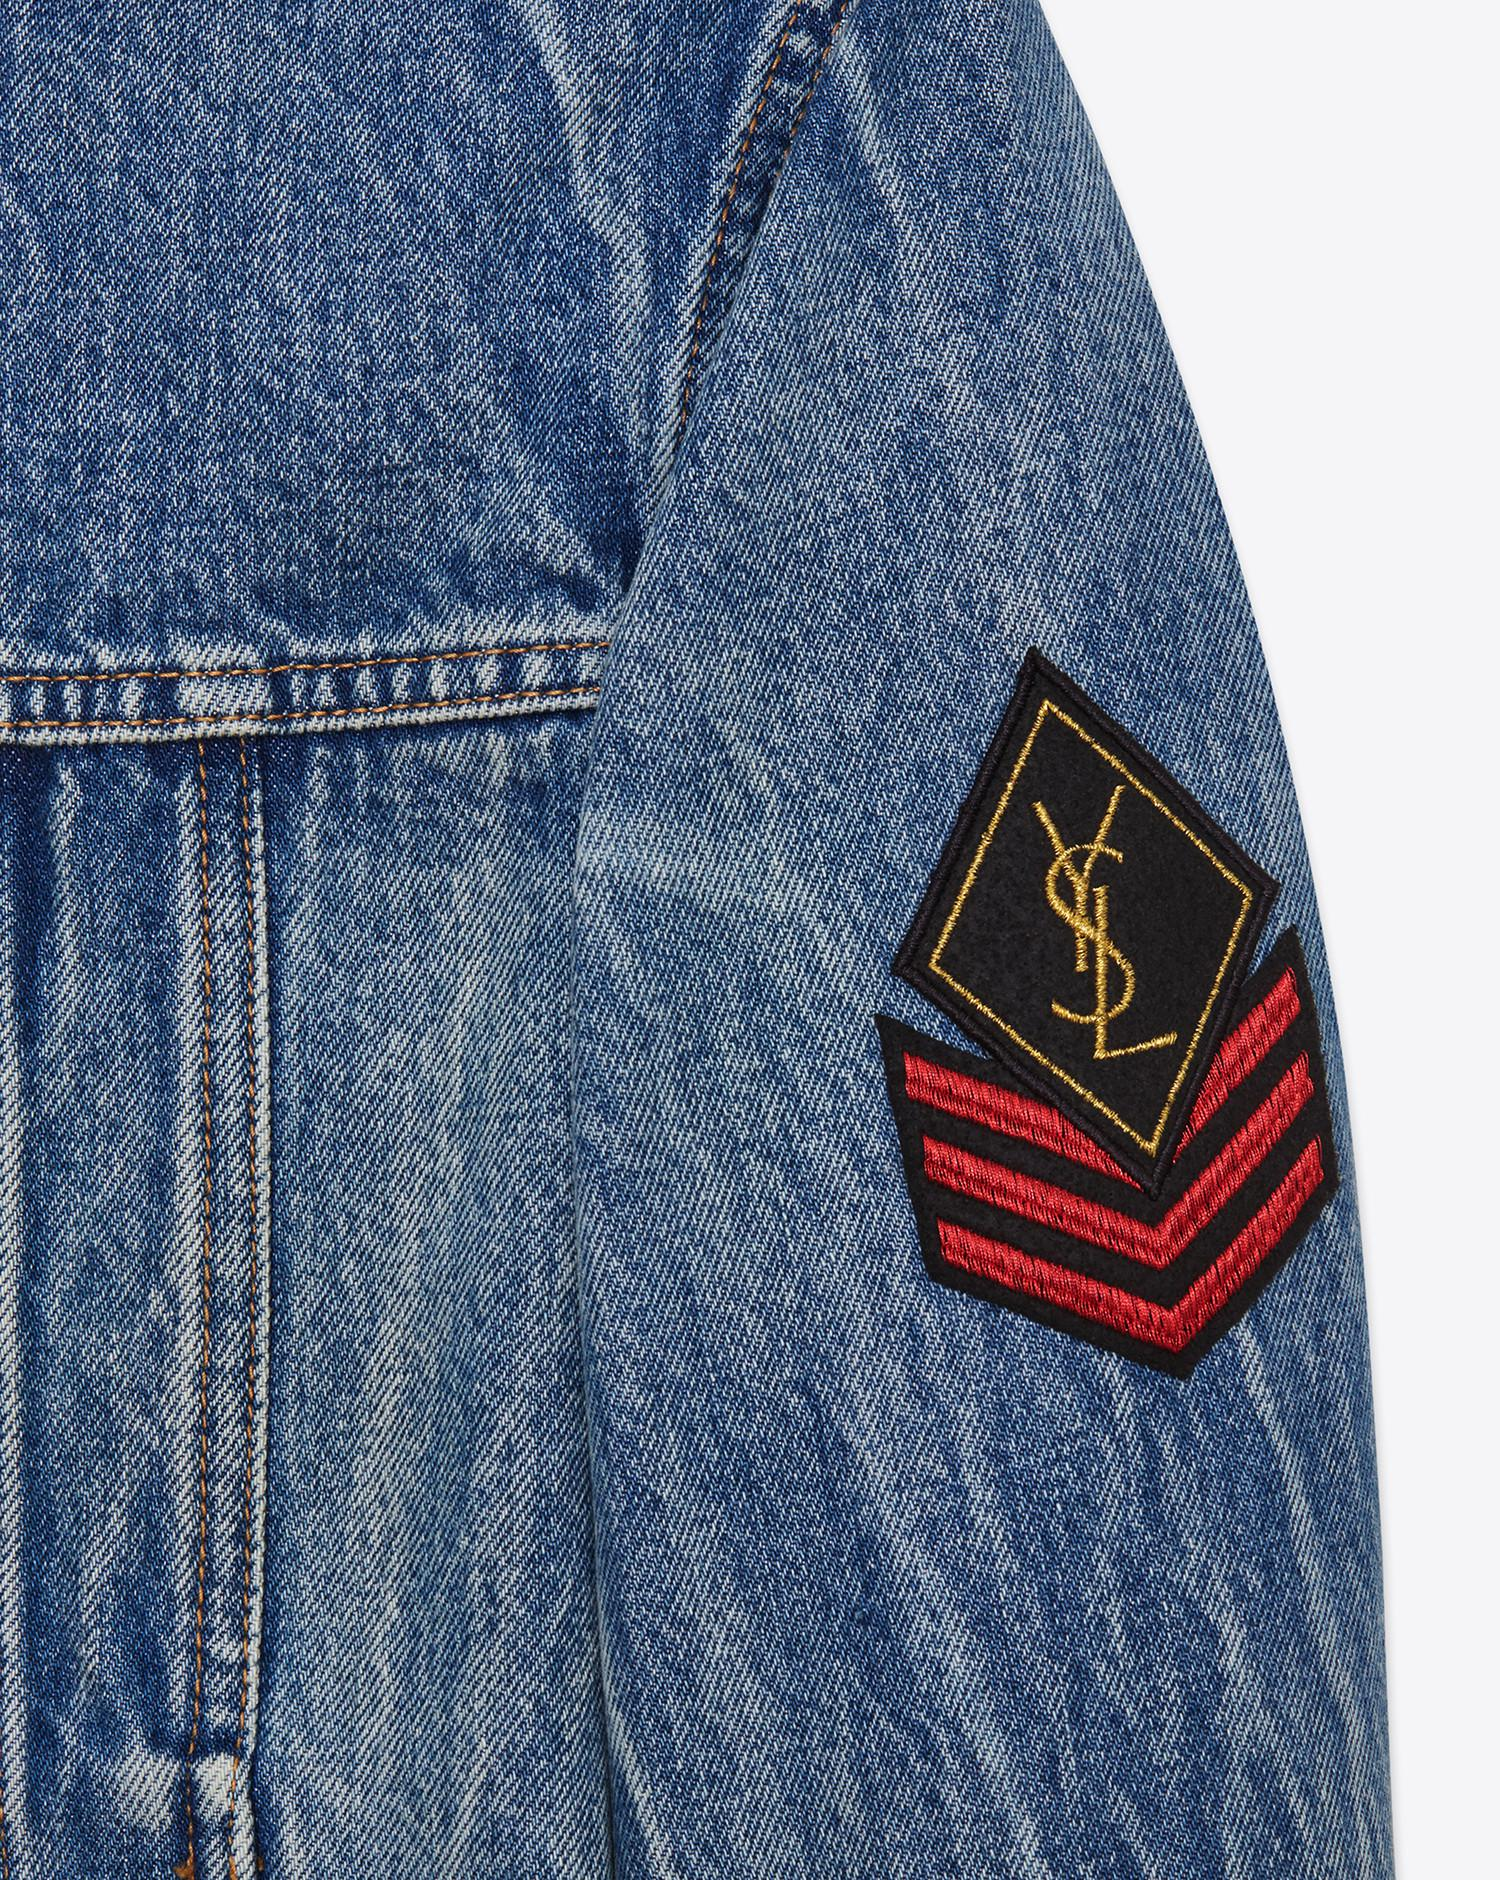 18045f1a0e6 Saint Laurent Original Ysl Military Patch Jean Jacket In Washed Blue ...